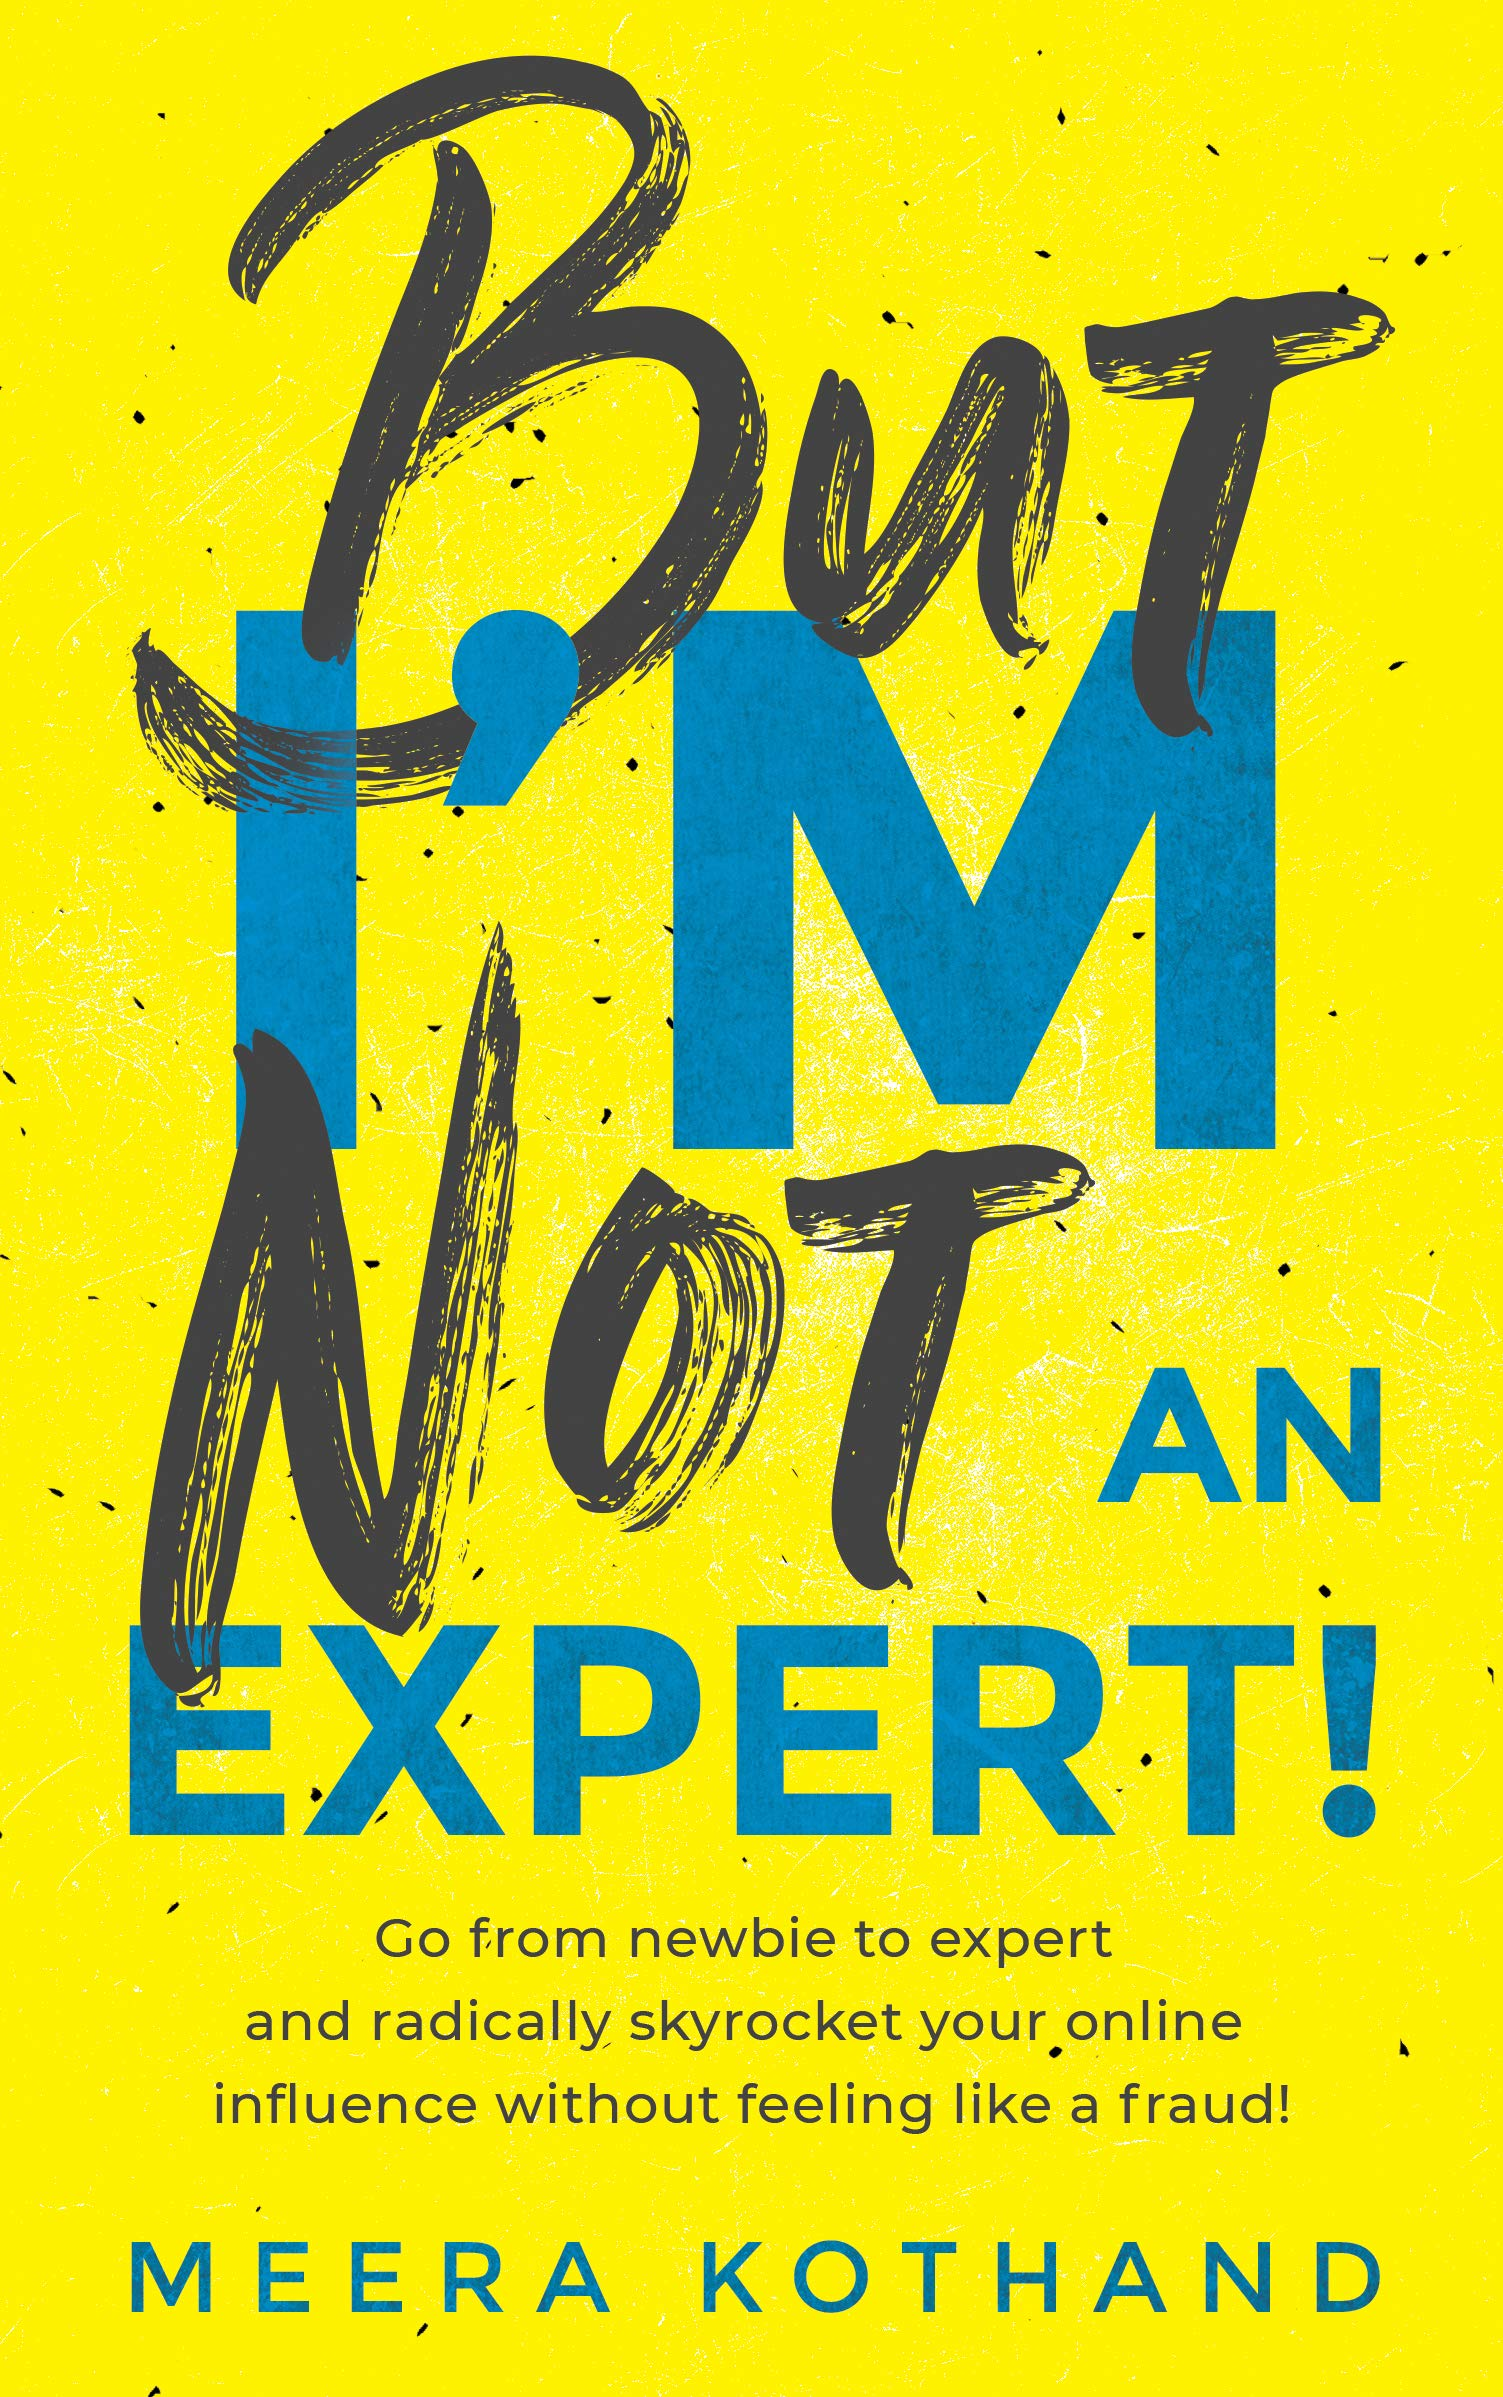 But I'm Not An Expert!: Go from newbie to expert and radically skyrocket your influence without feeling like a fraud (Engl...